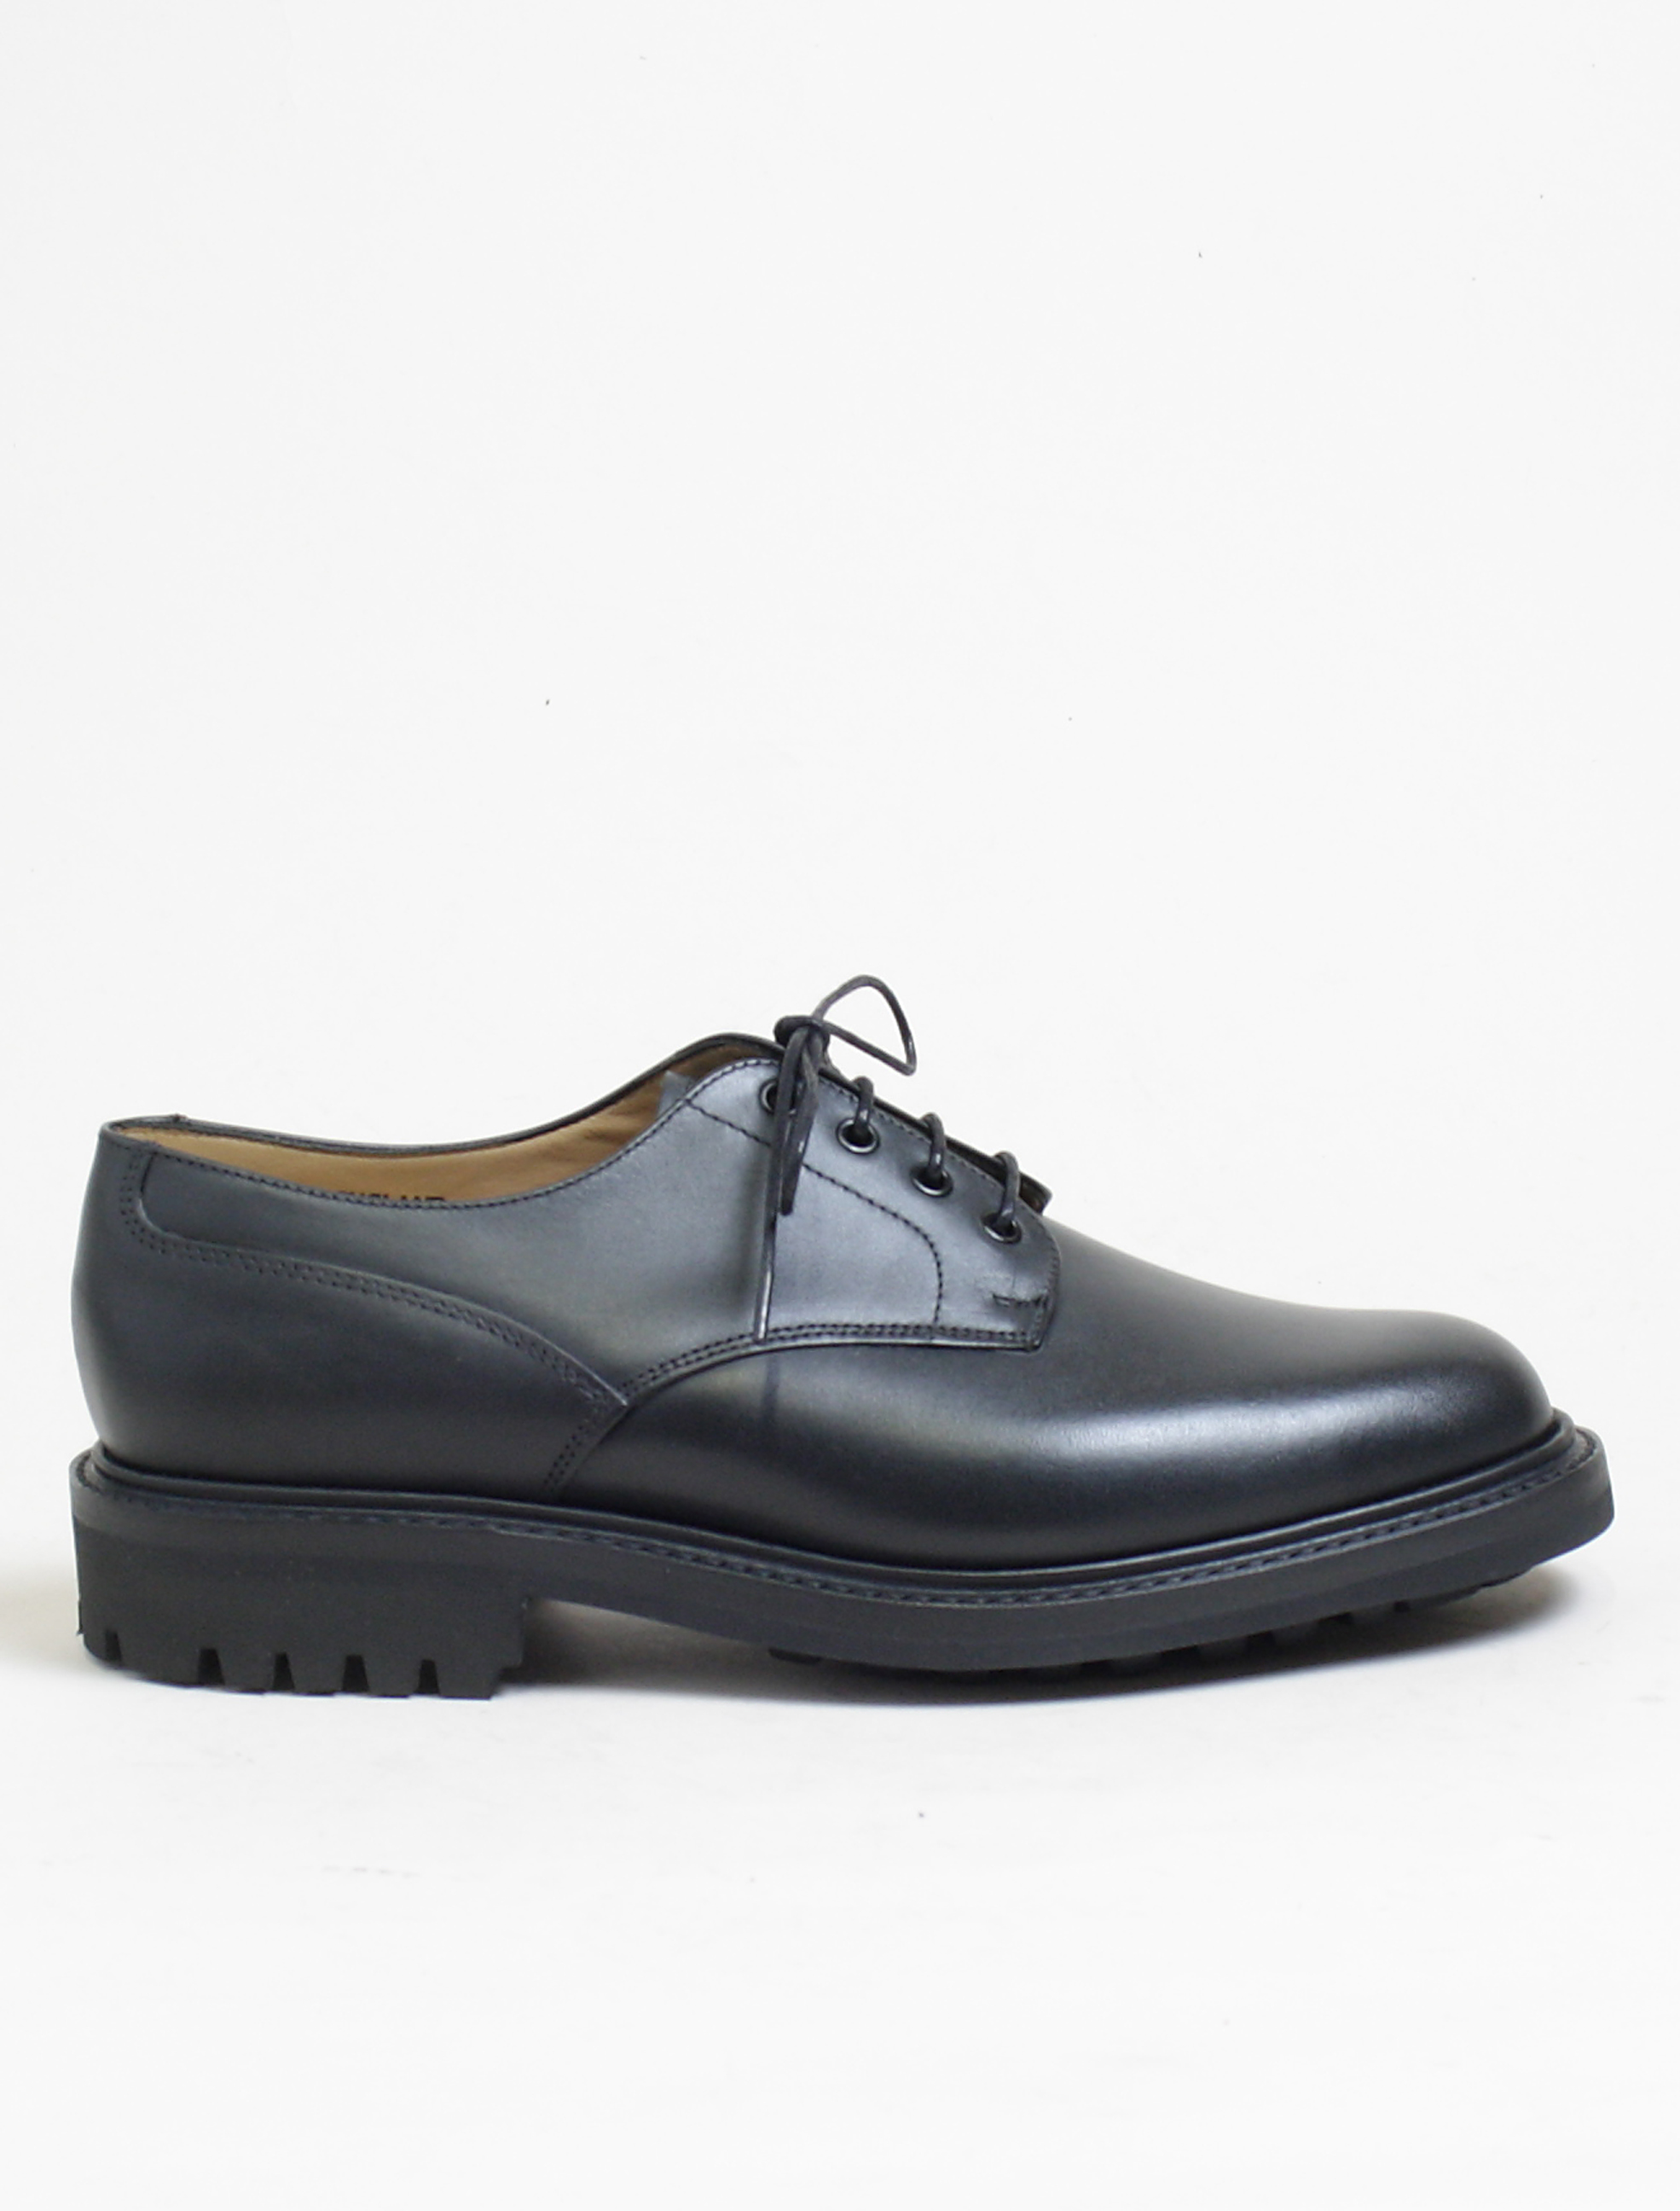 Sanders 9920 derby shoes black calf commando